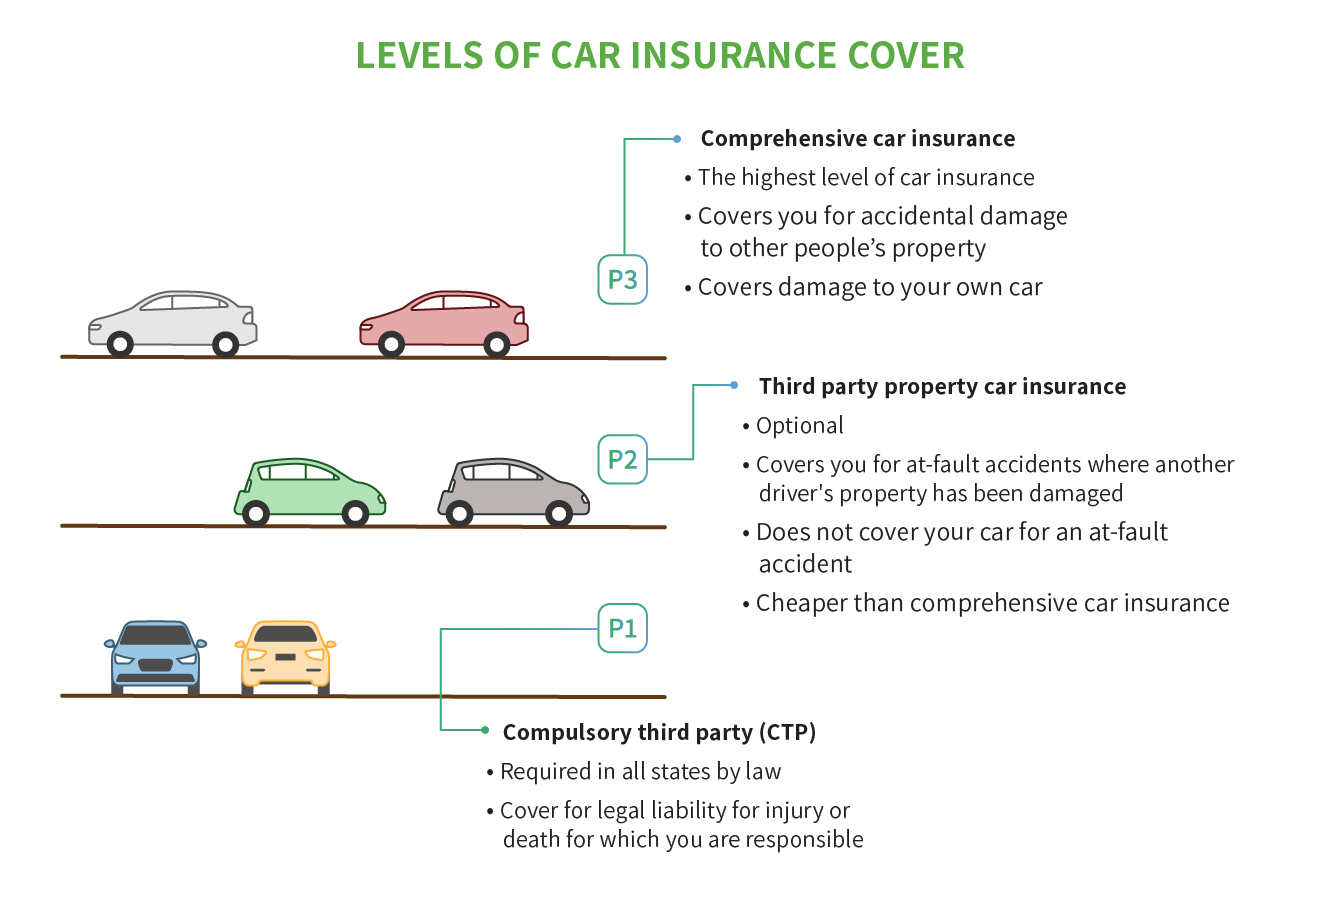 Levels of car insurance cover - comprehensive and third party